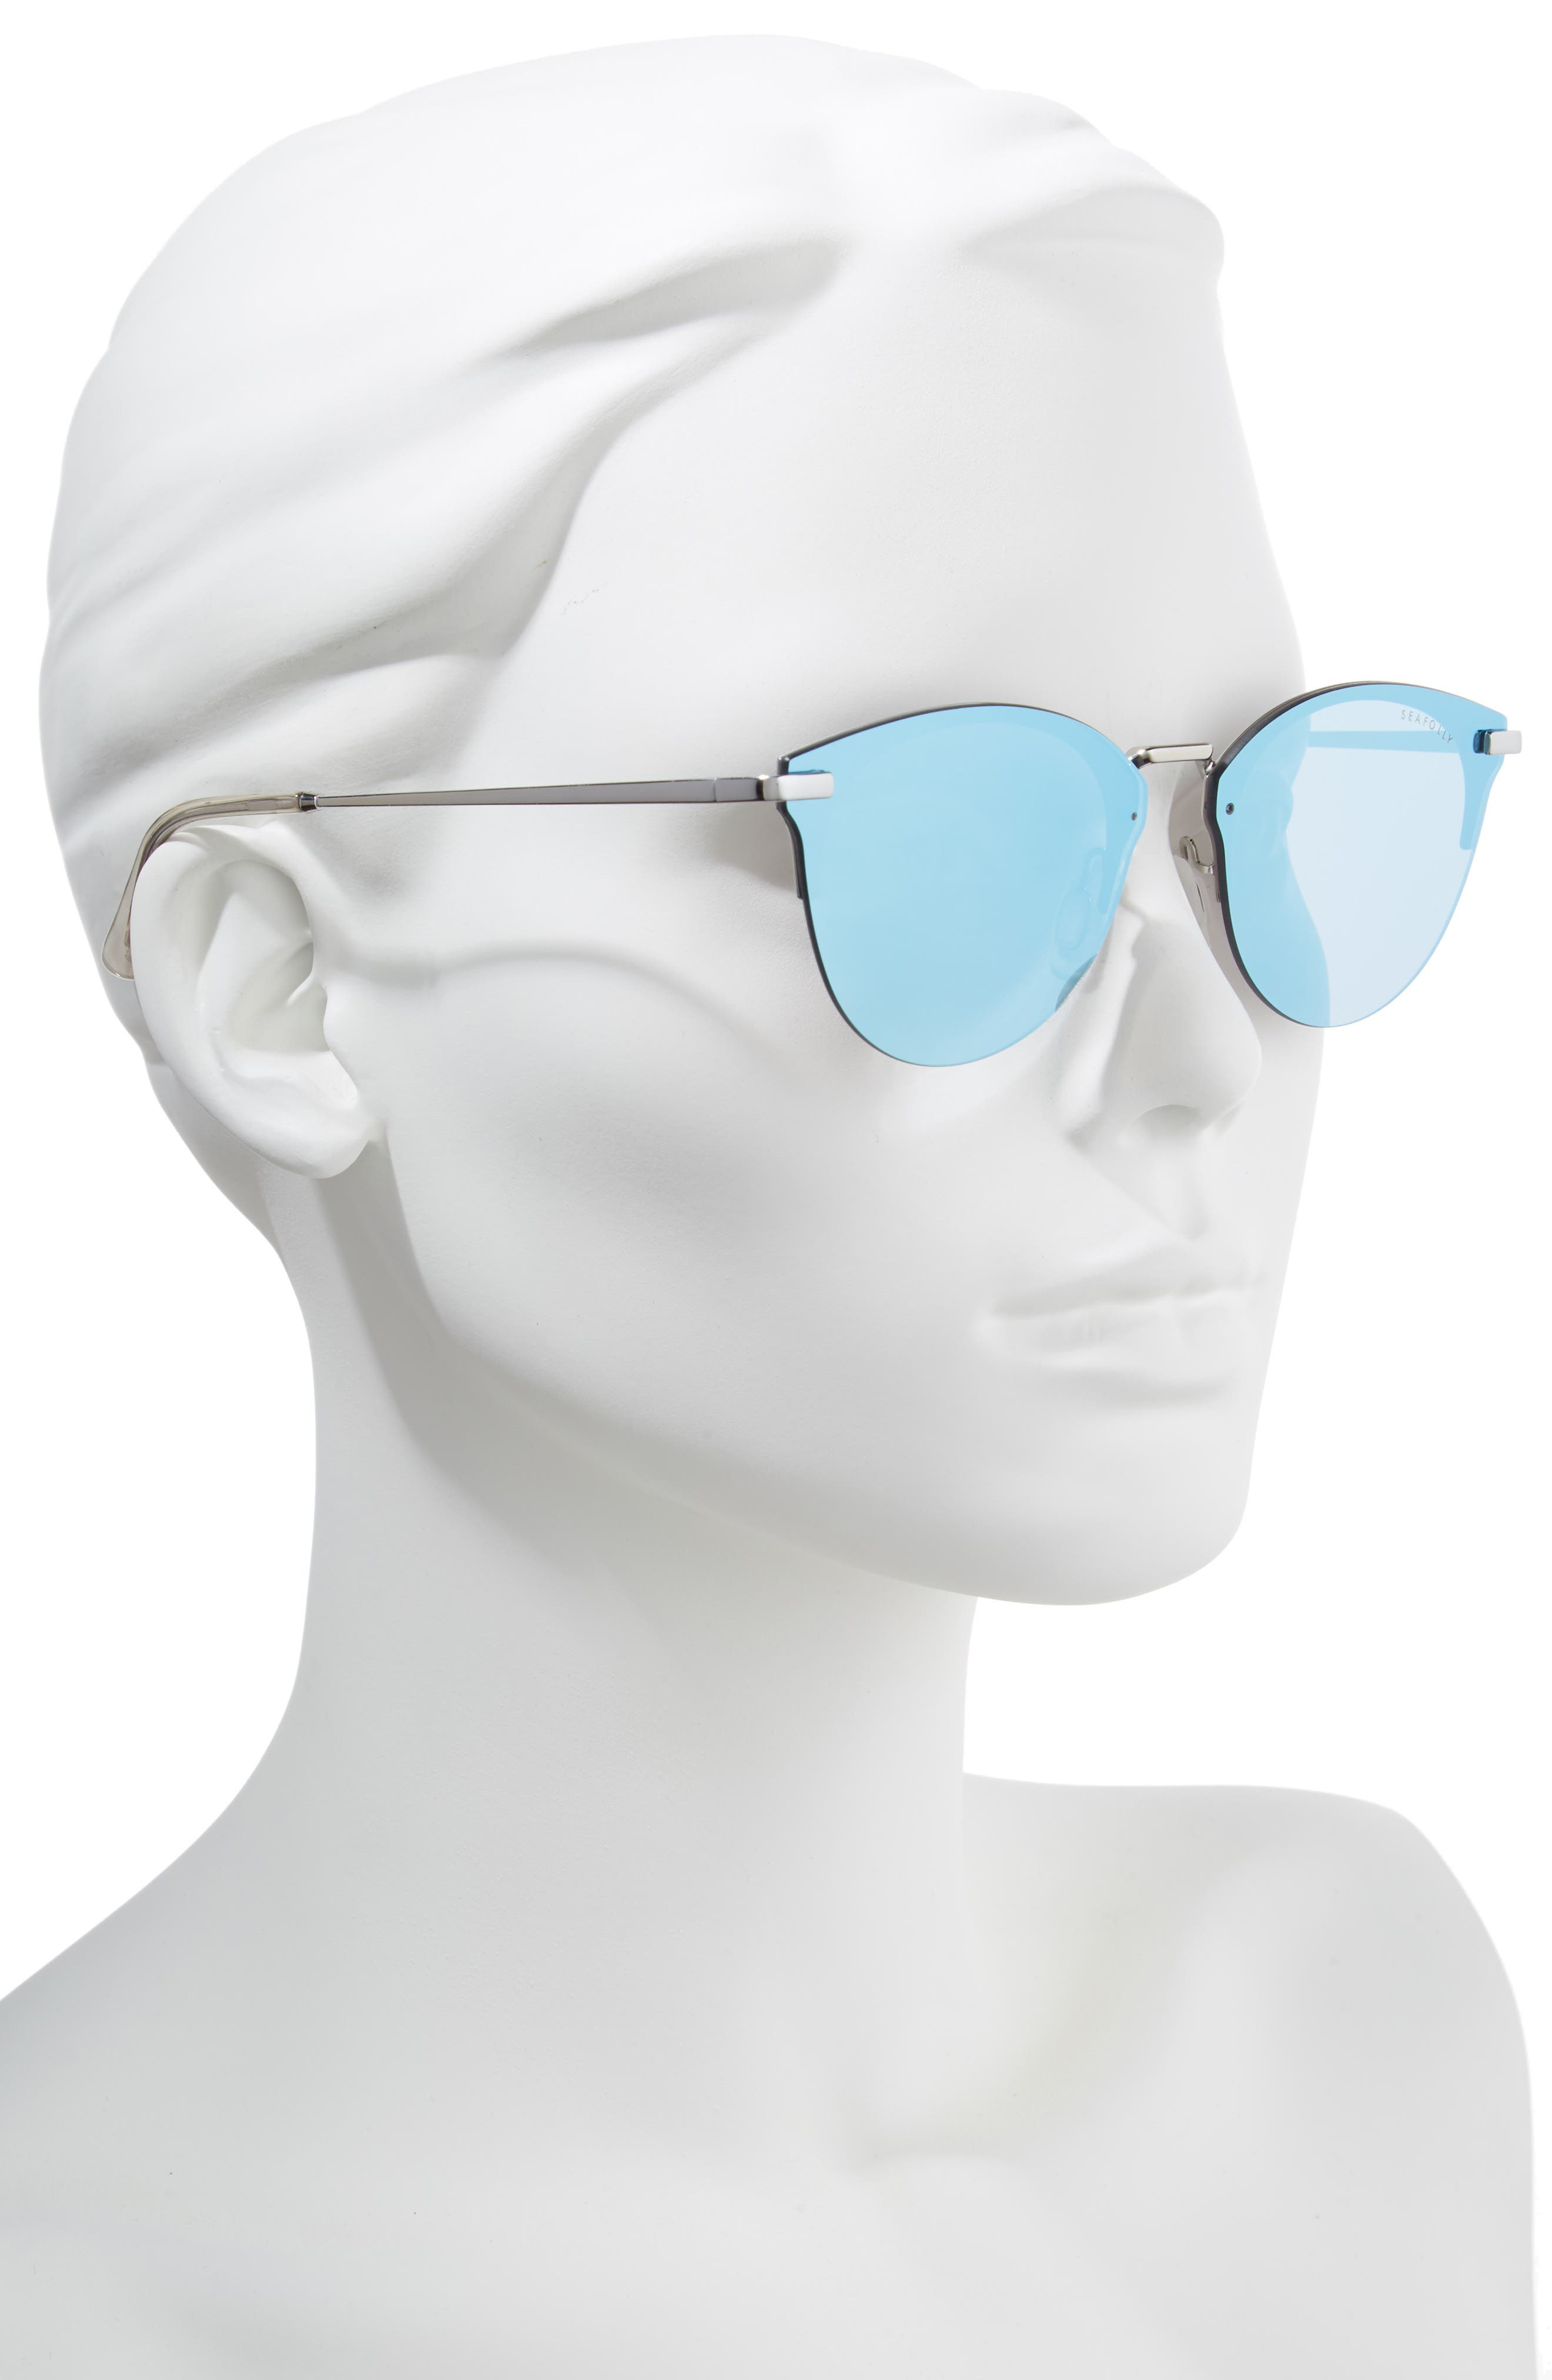 Wylies 50mm Rimless Sunglasses,                             Alternate thumbnail 2, color,                             400